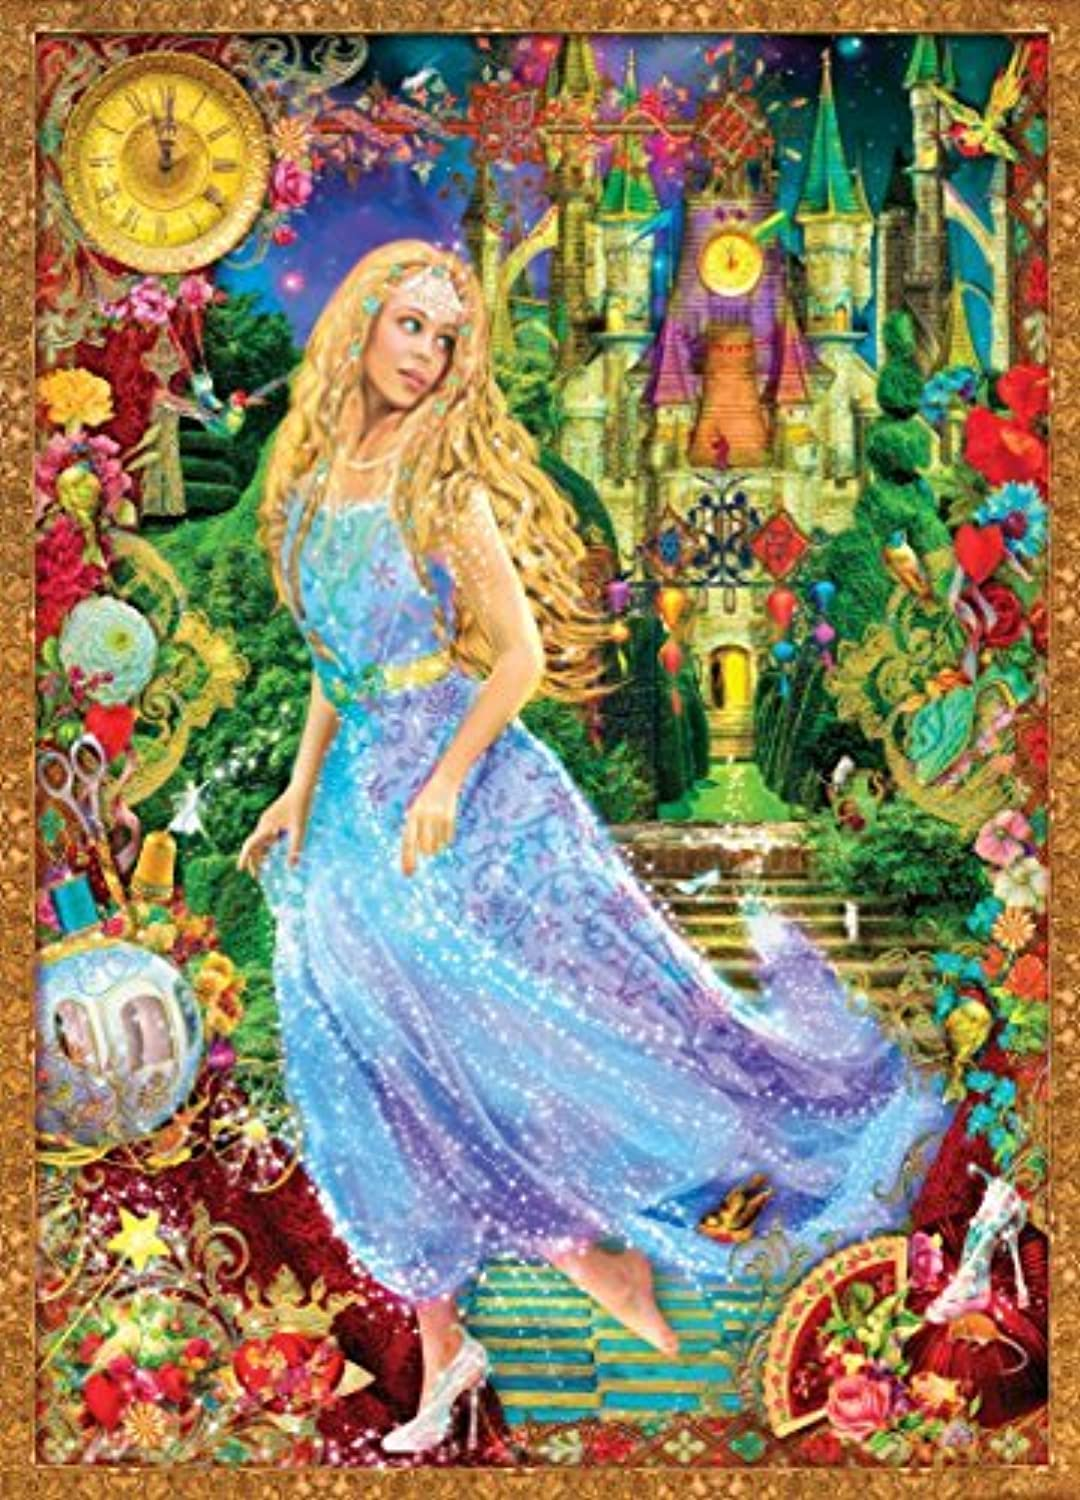 Masterpieces Cinderella's Glass Slipper Book Box Assortment Jigsaw Puzzle (1000Piece) by MasterPieces